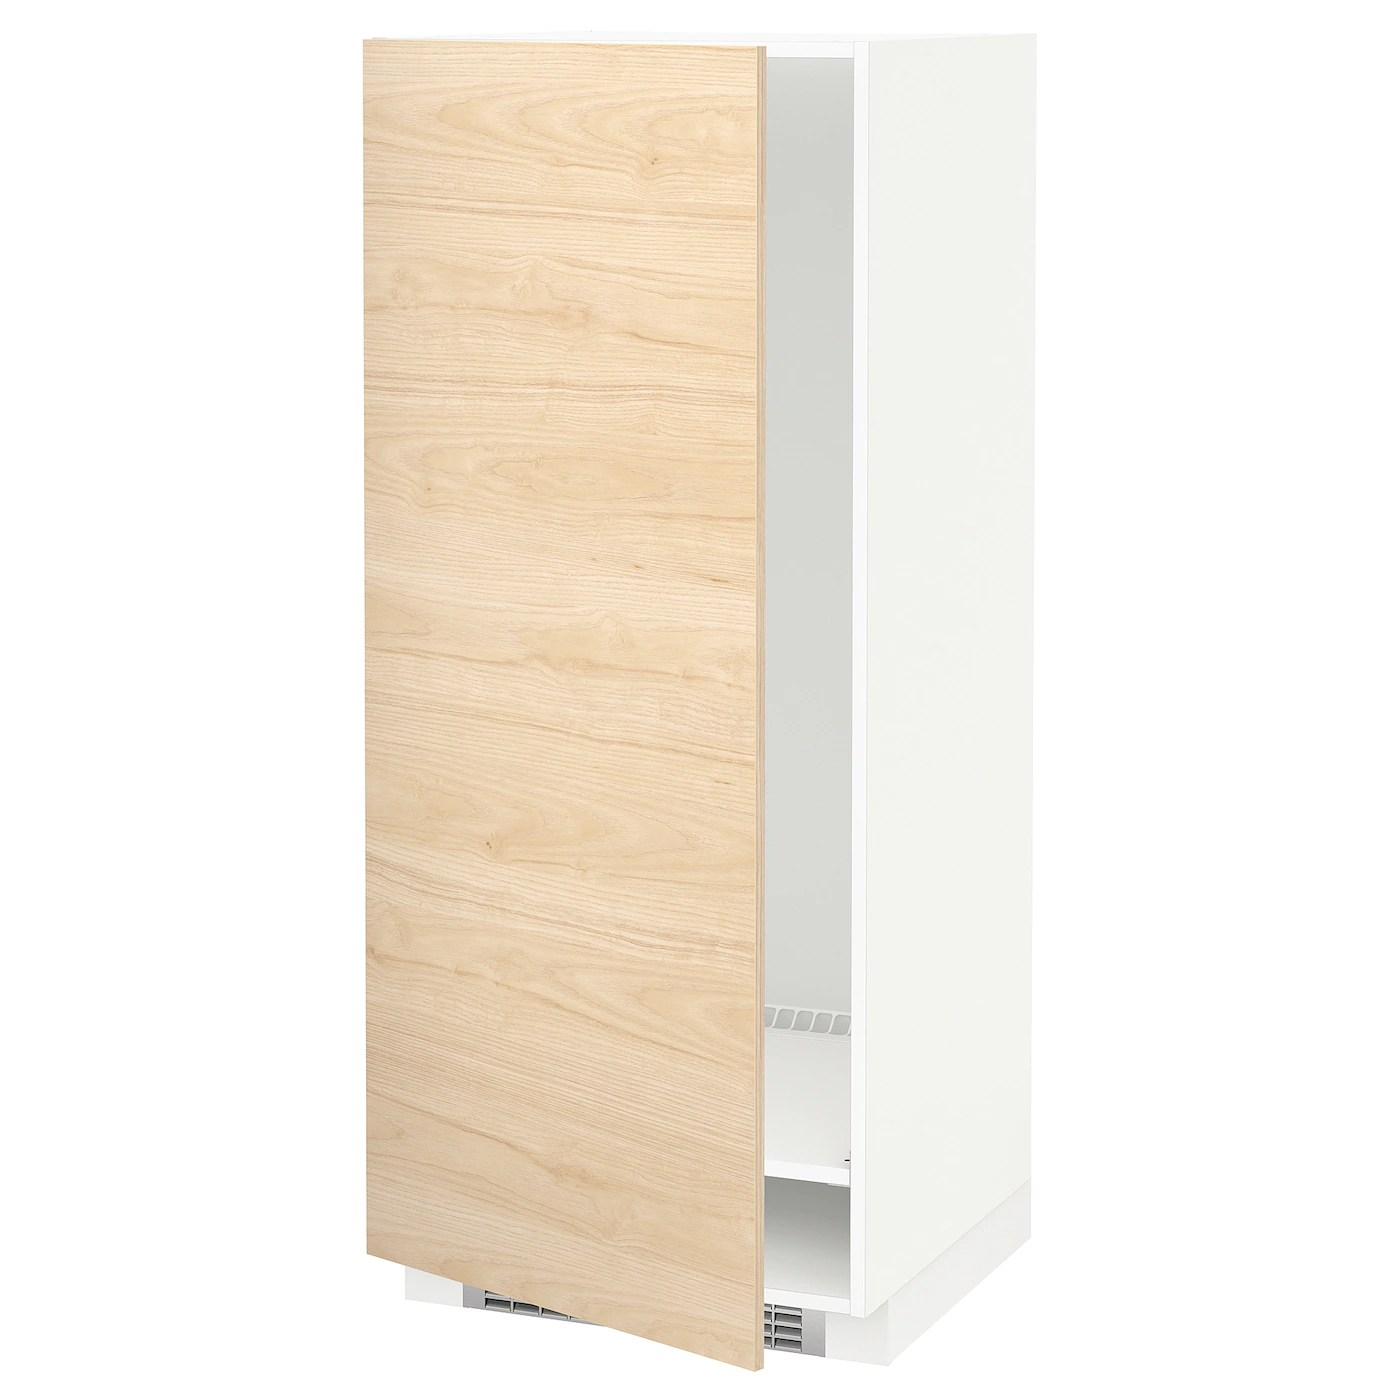 Ikea Metod Pdf Metod High Cabinet For Fridge Freezer White Askersund Light Ash Effect